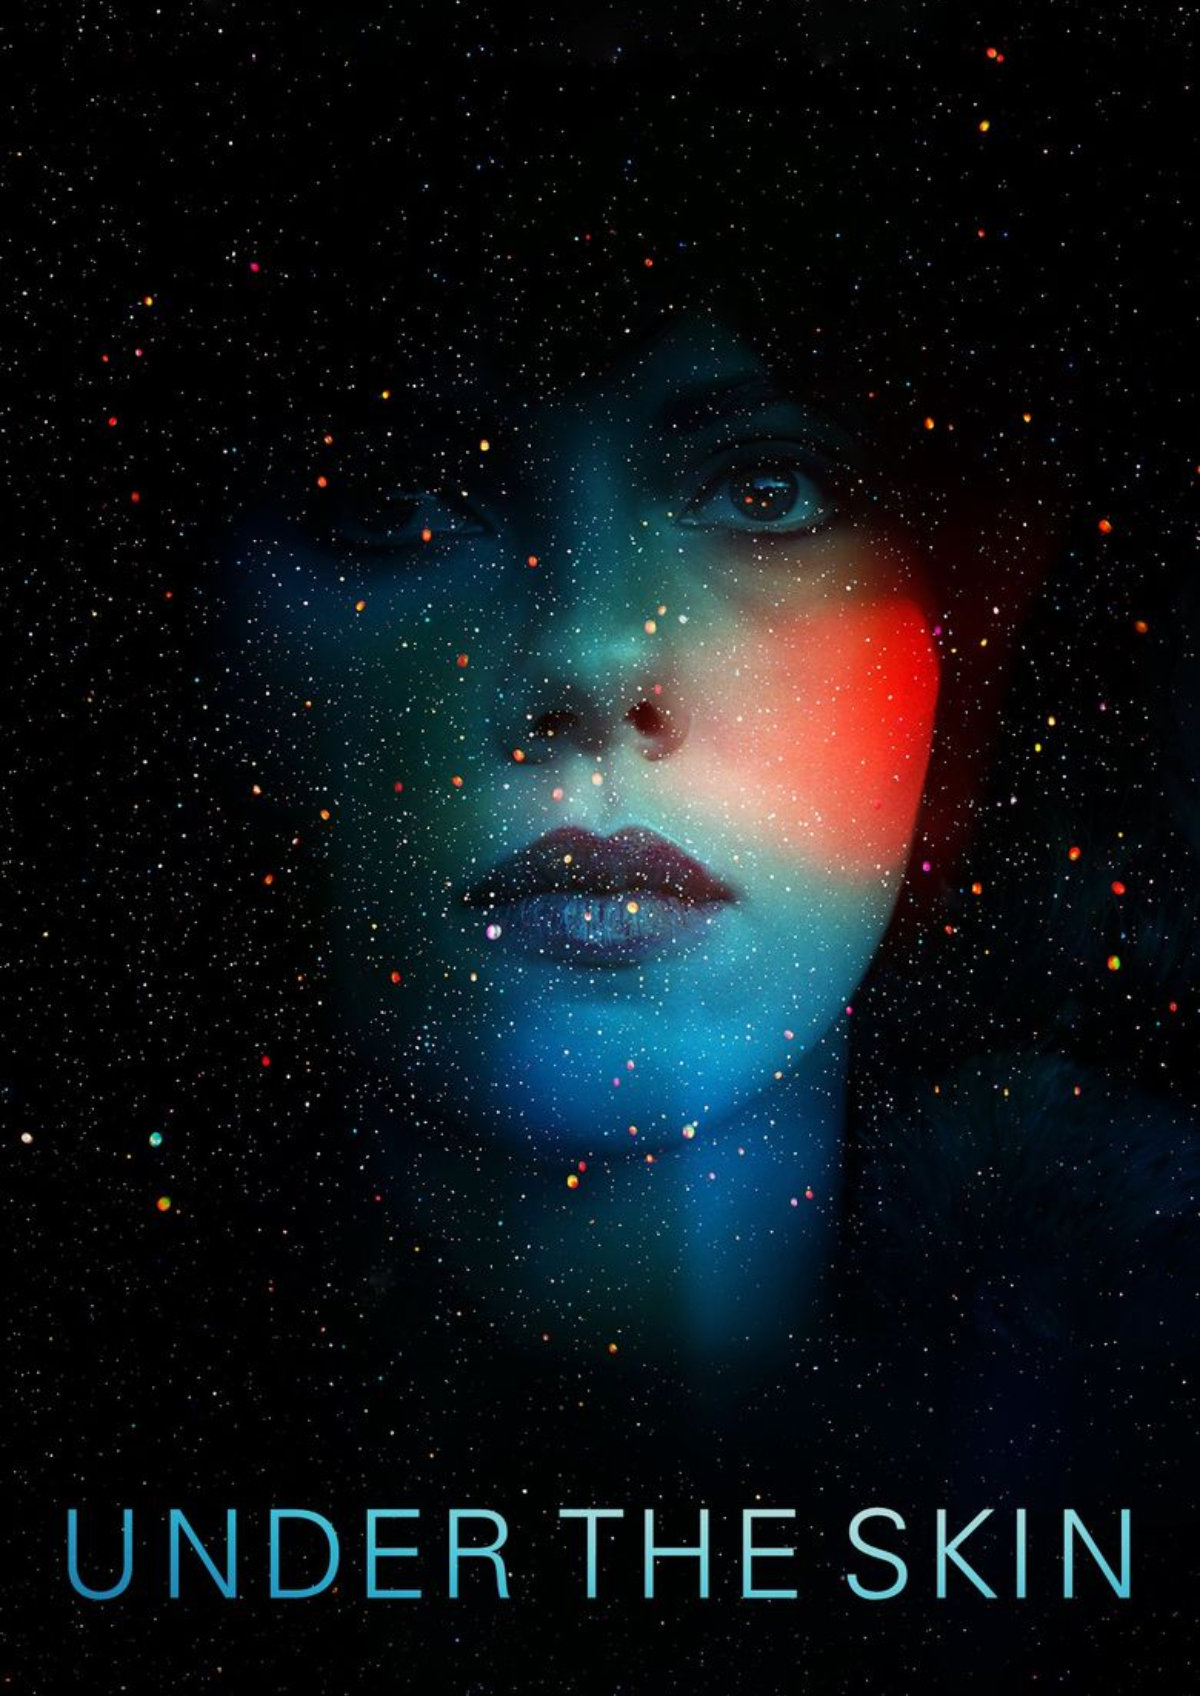 'Under The Skin' movie poster